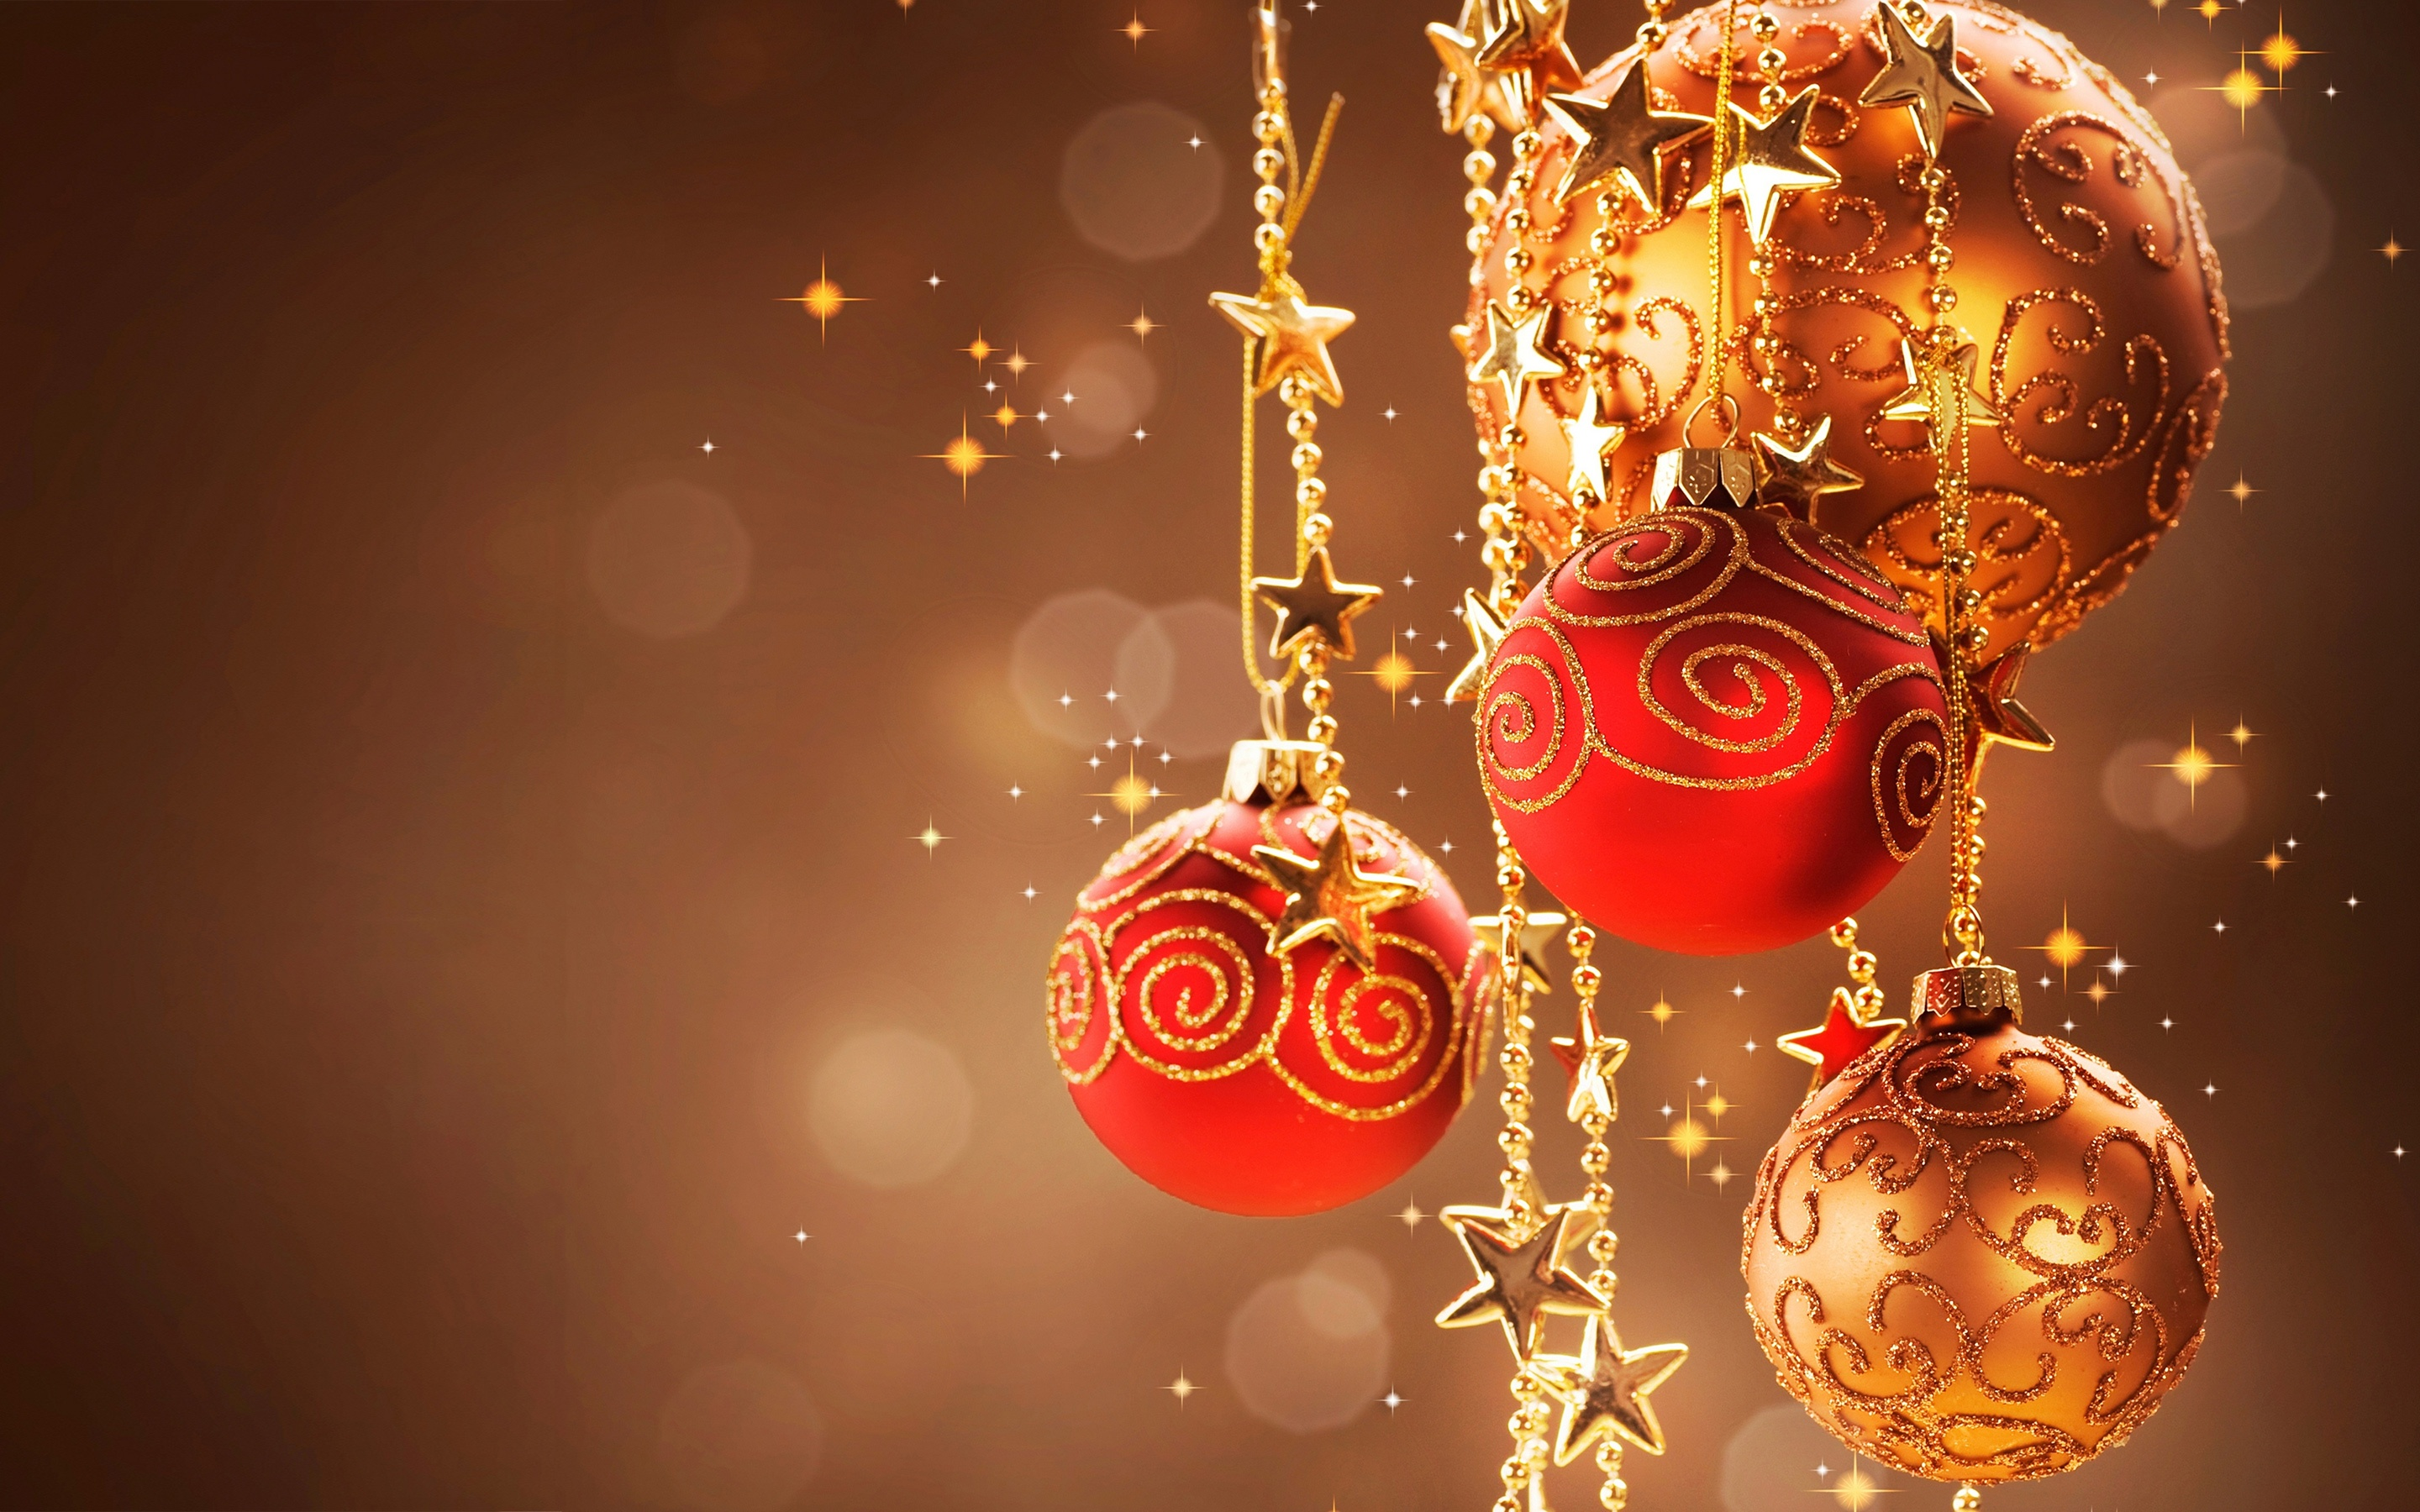 20 Fantastic HD Christmas Wallpapers